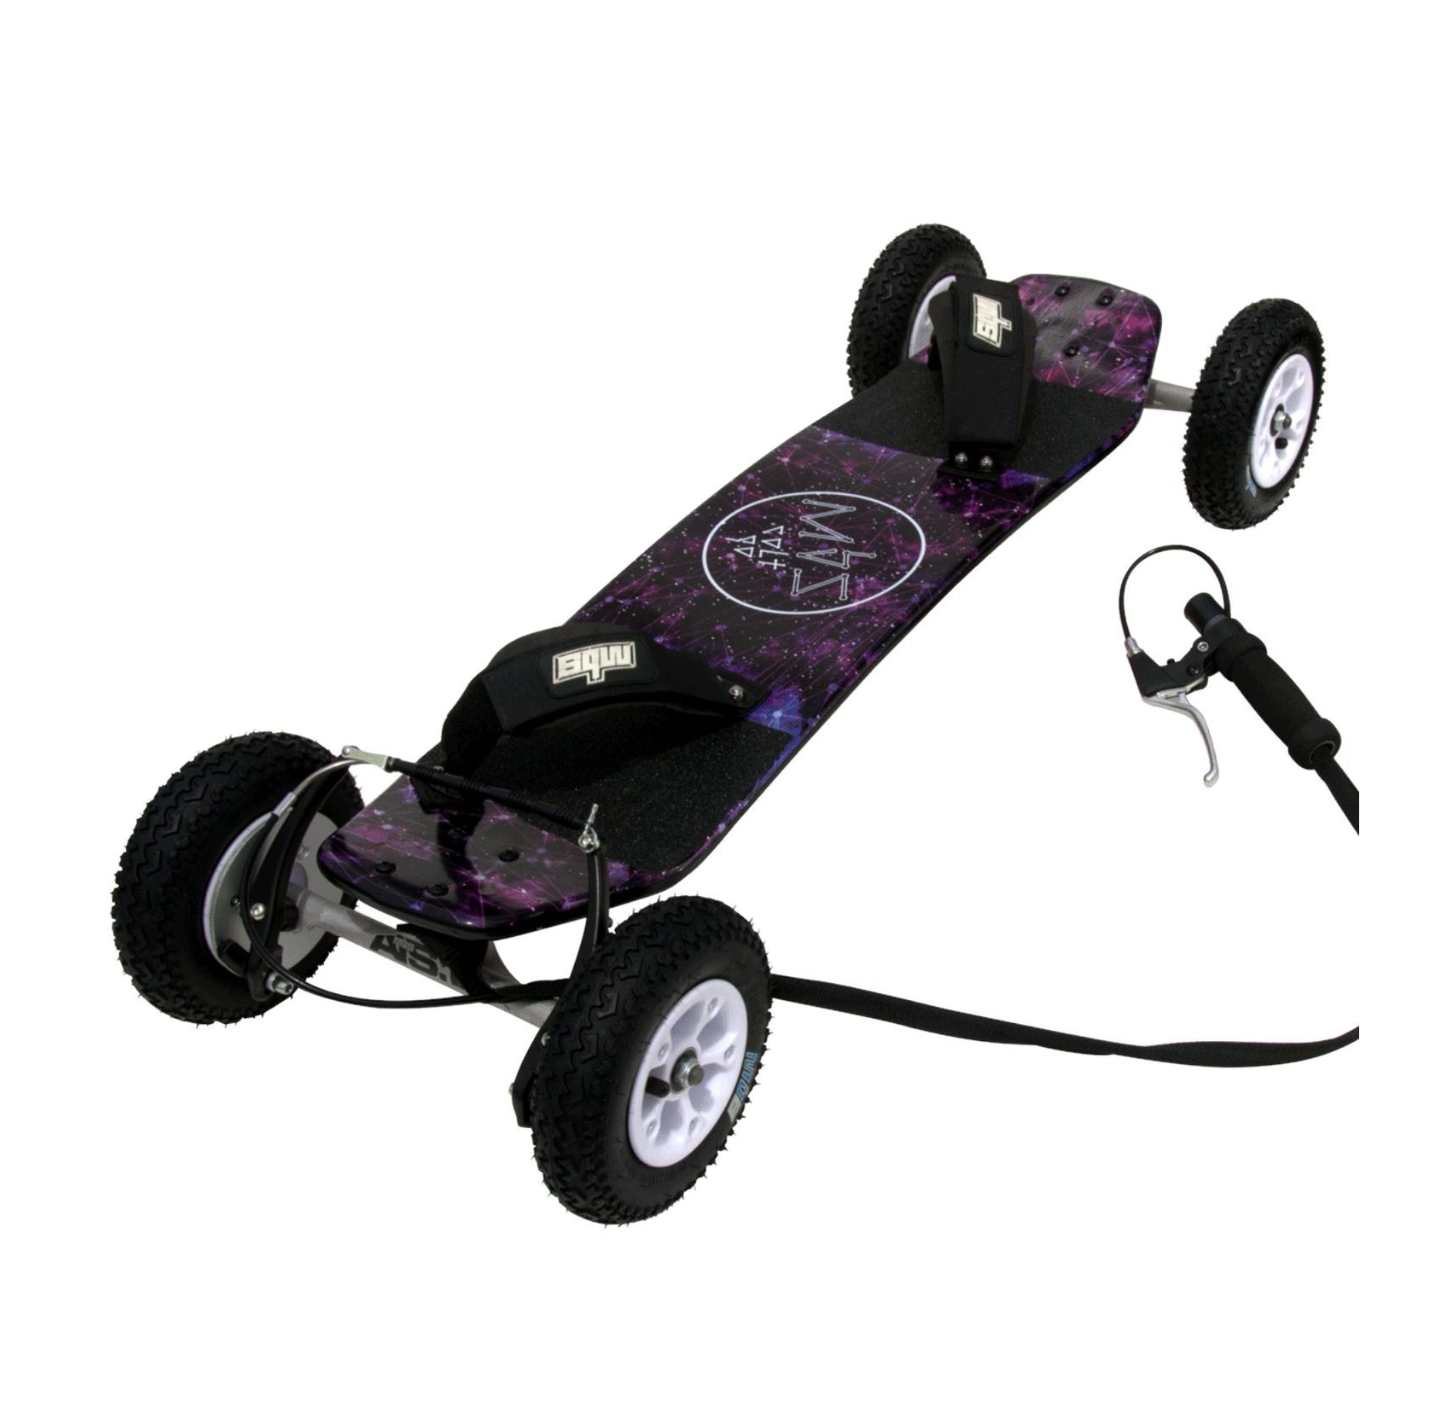 Image of MBS Colt 90X Mountainboard - Constellation